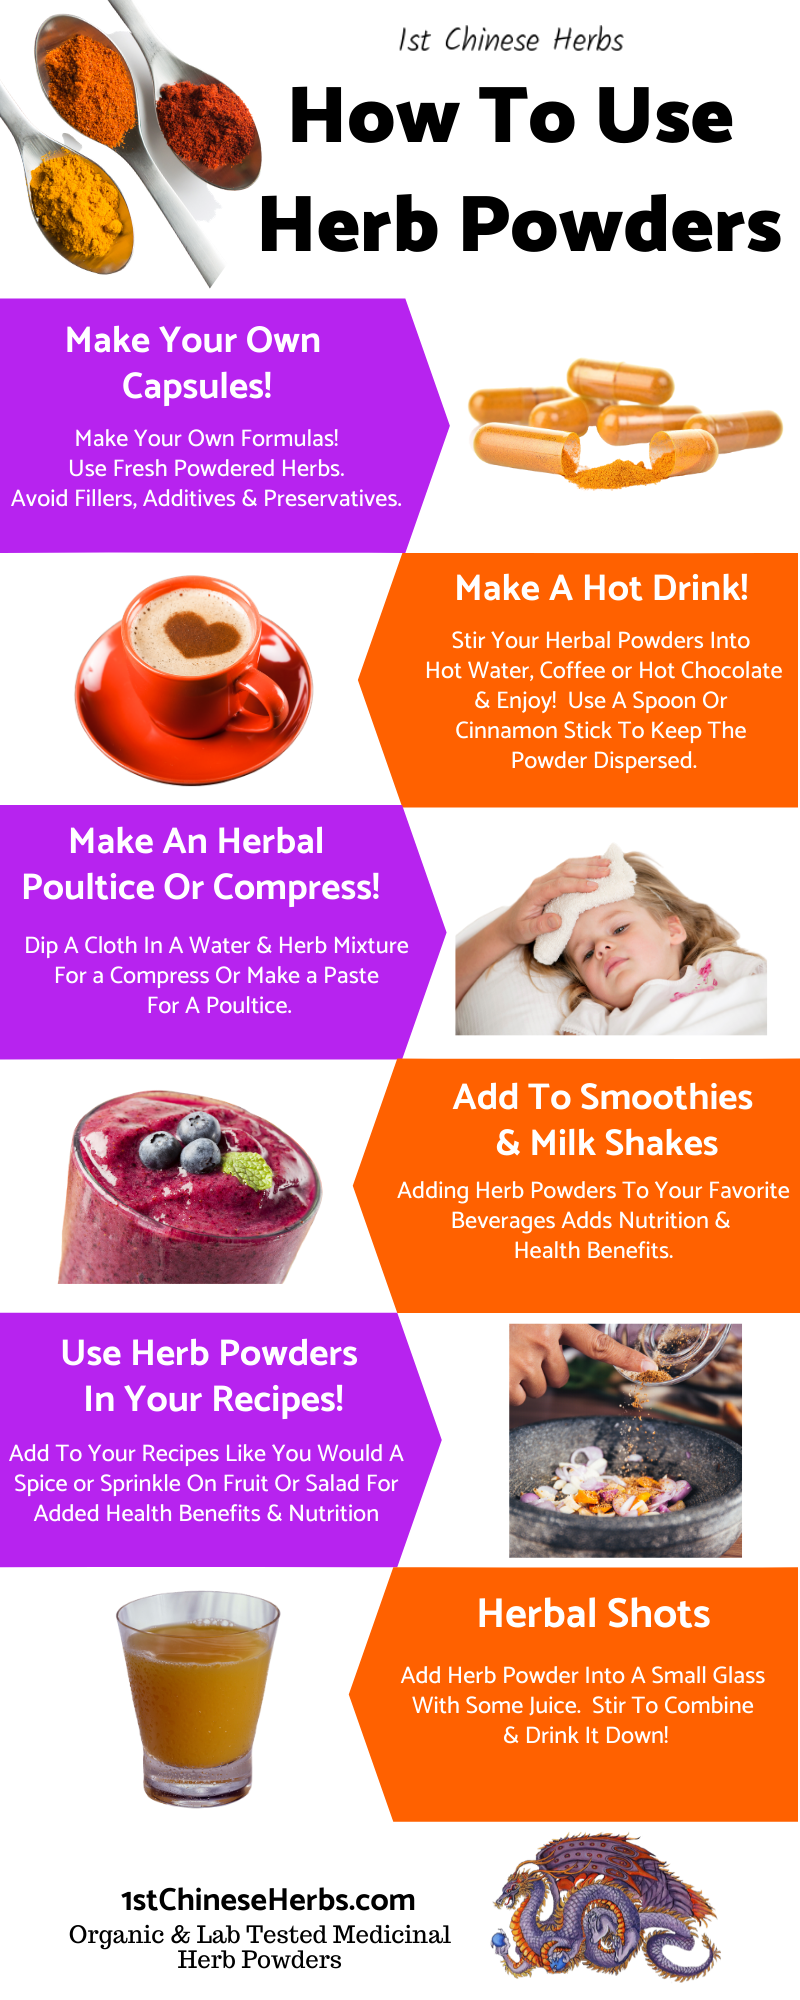 how to use powdered herbs, how to use medicinal herb powders, how to get therapeutic doses of herb powders.